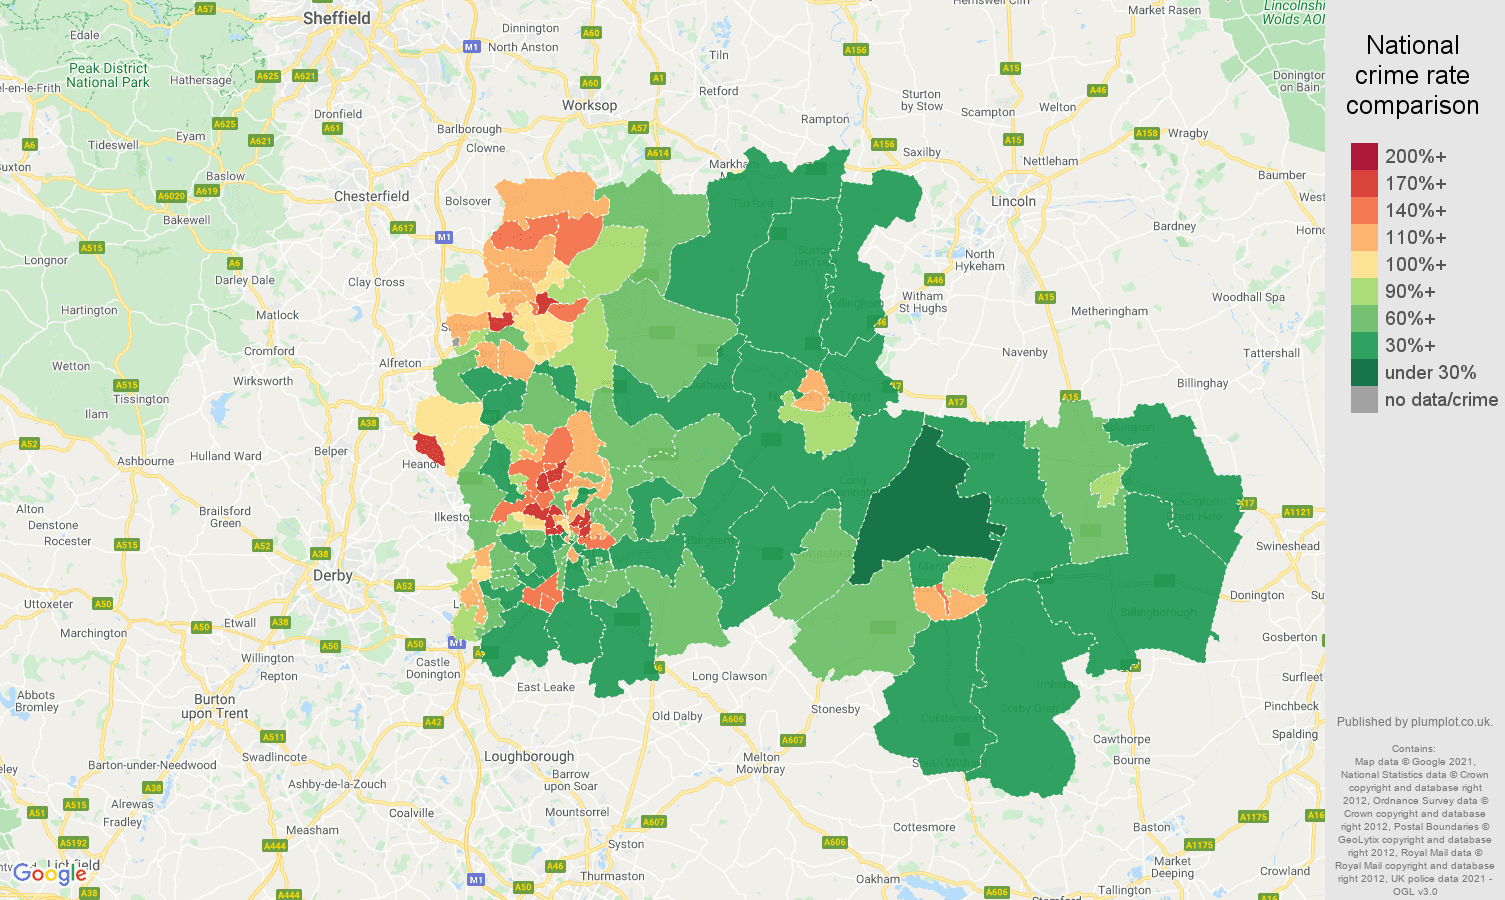 Nottingham violent crime rate comparison map